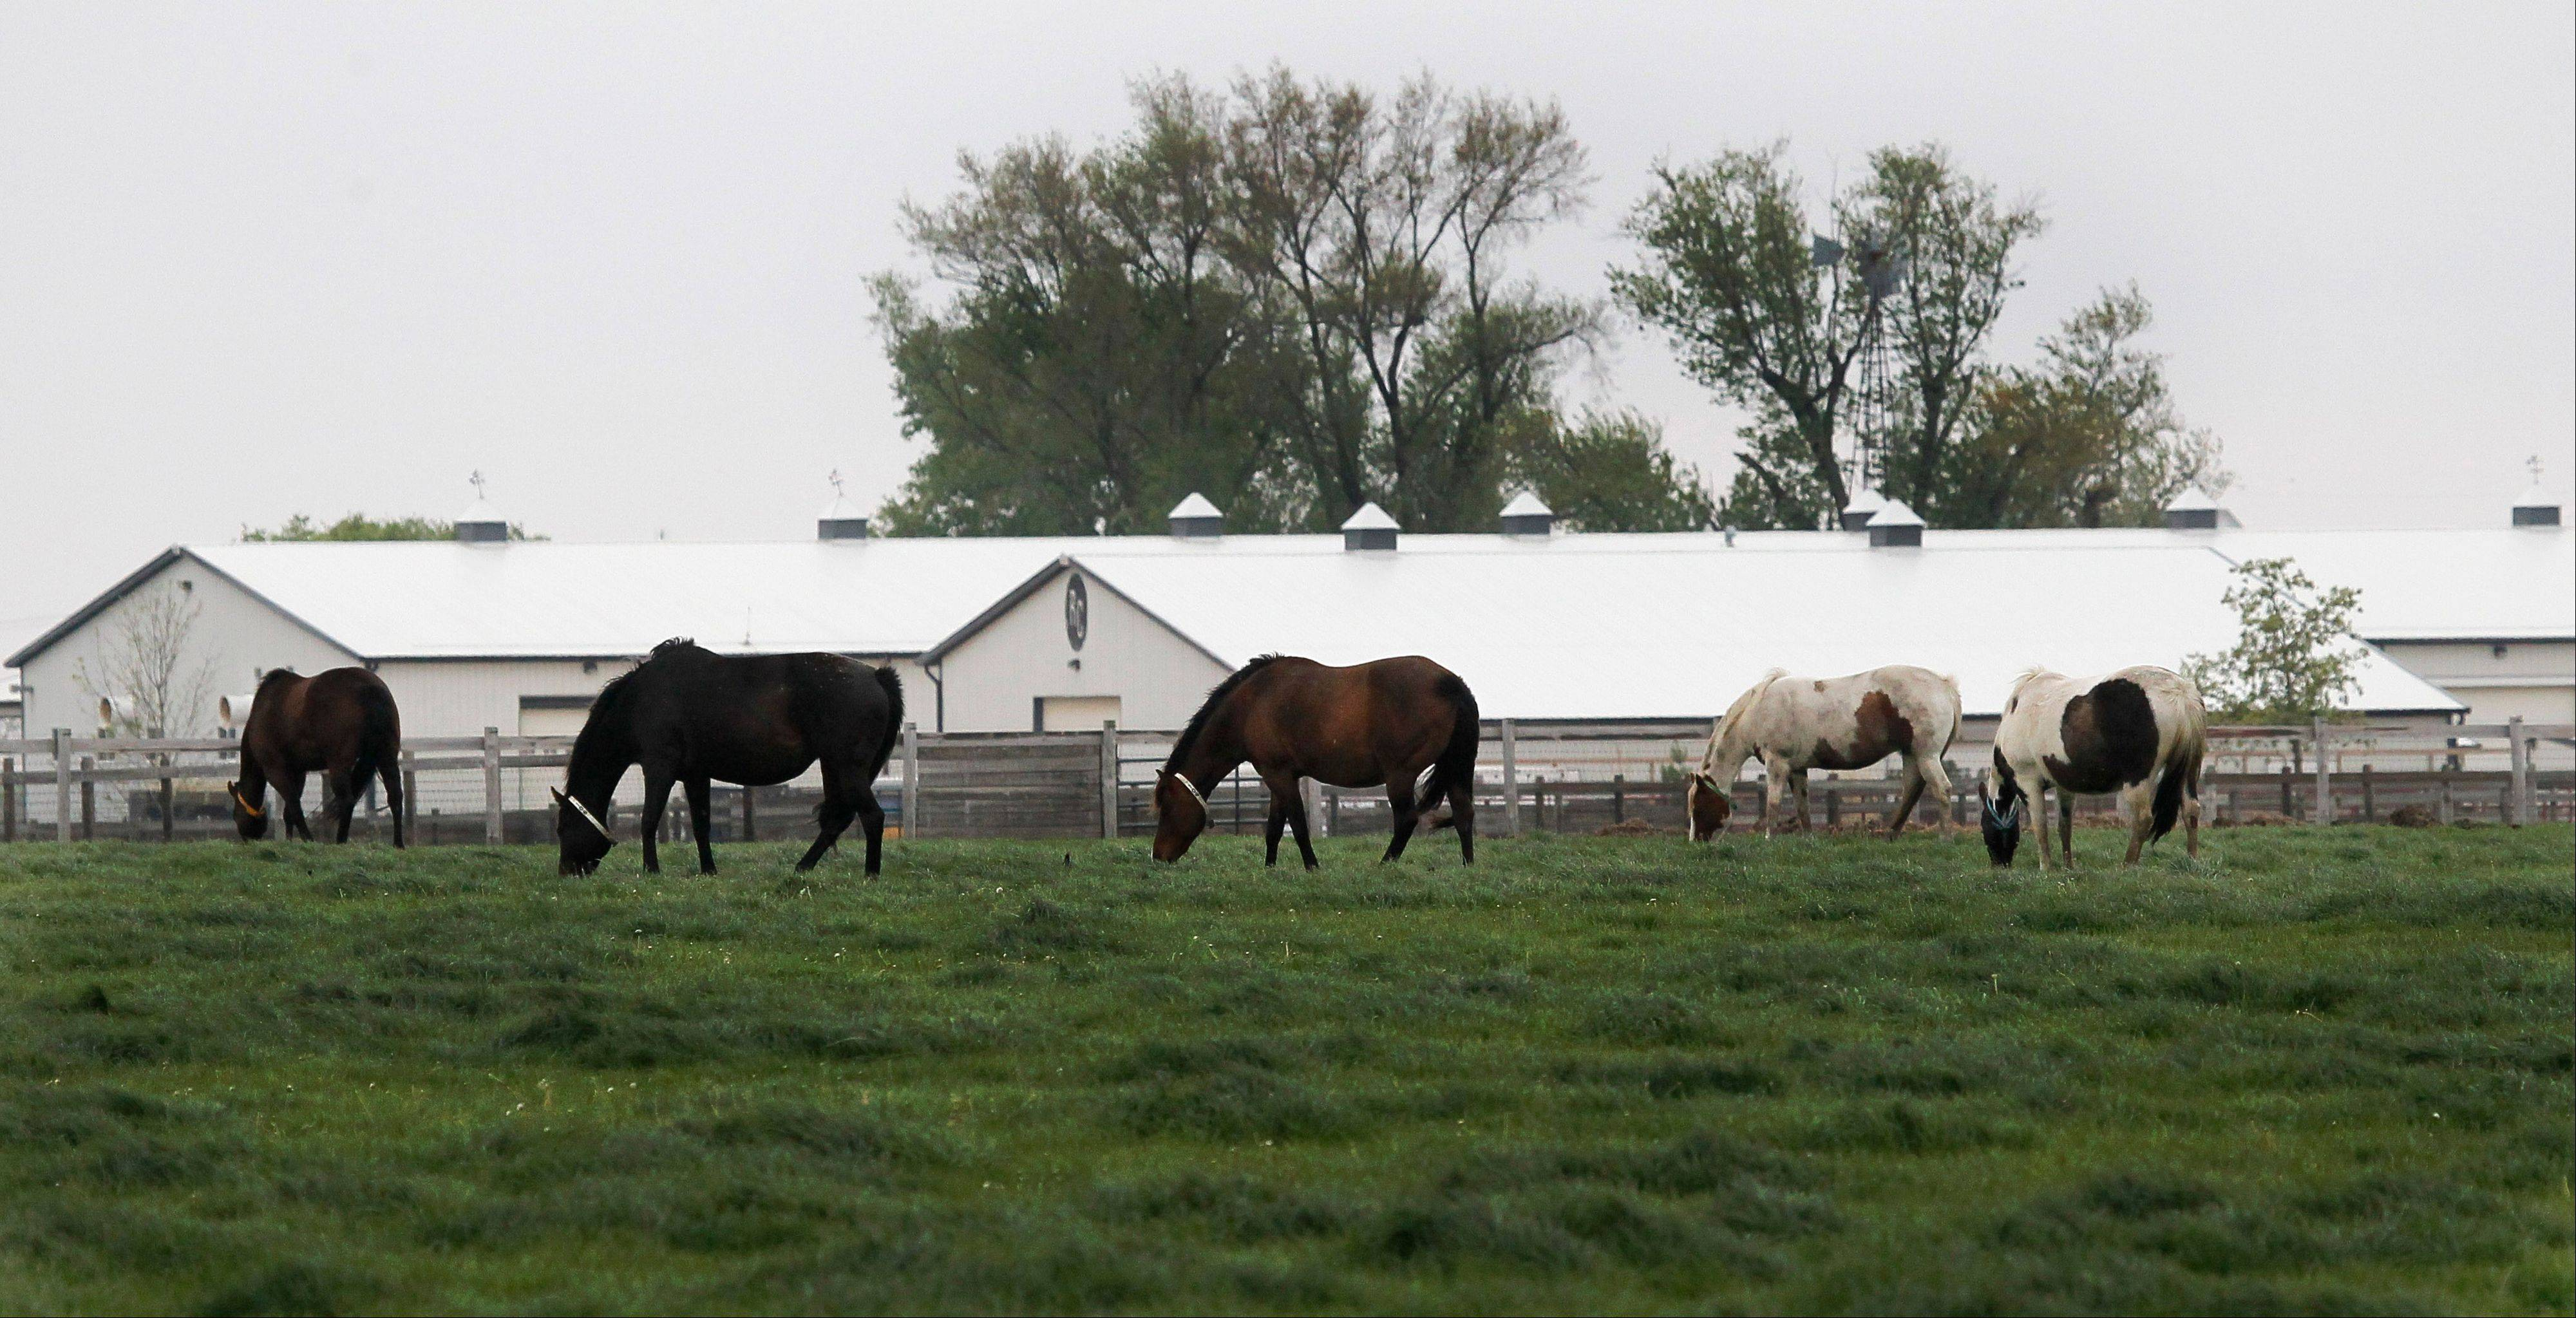 Horses graze at the ranch owned by Rita Crundwell outside of Dixon on April 20. Crundwell has pleaded not guilty to charges alleging she stole more than $53 million from the small northern Illinois city to pay for a lavish lifestyle and create a horse-breeding operation.